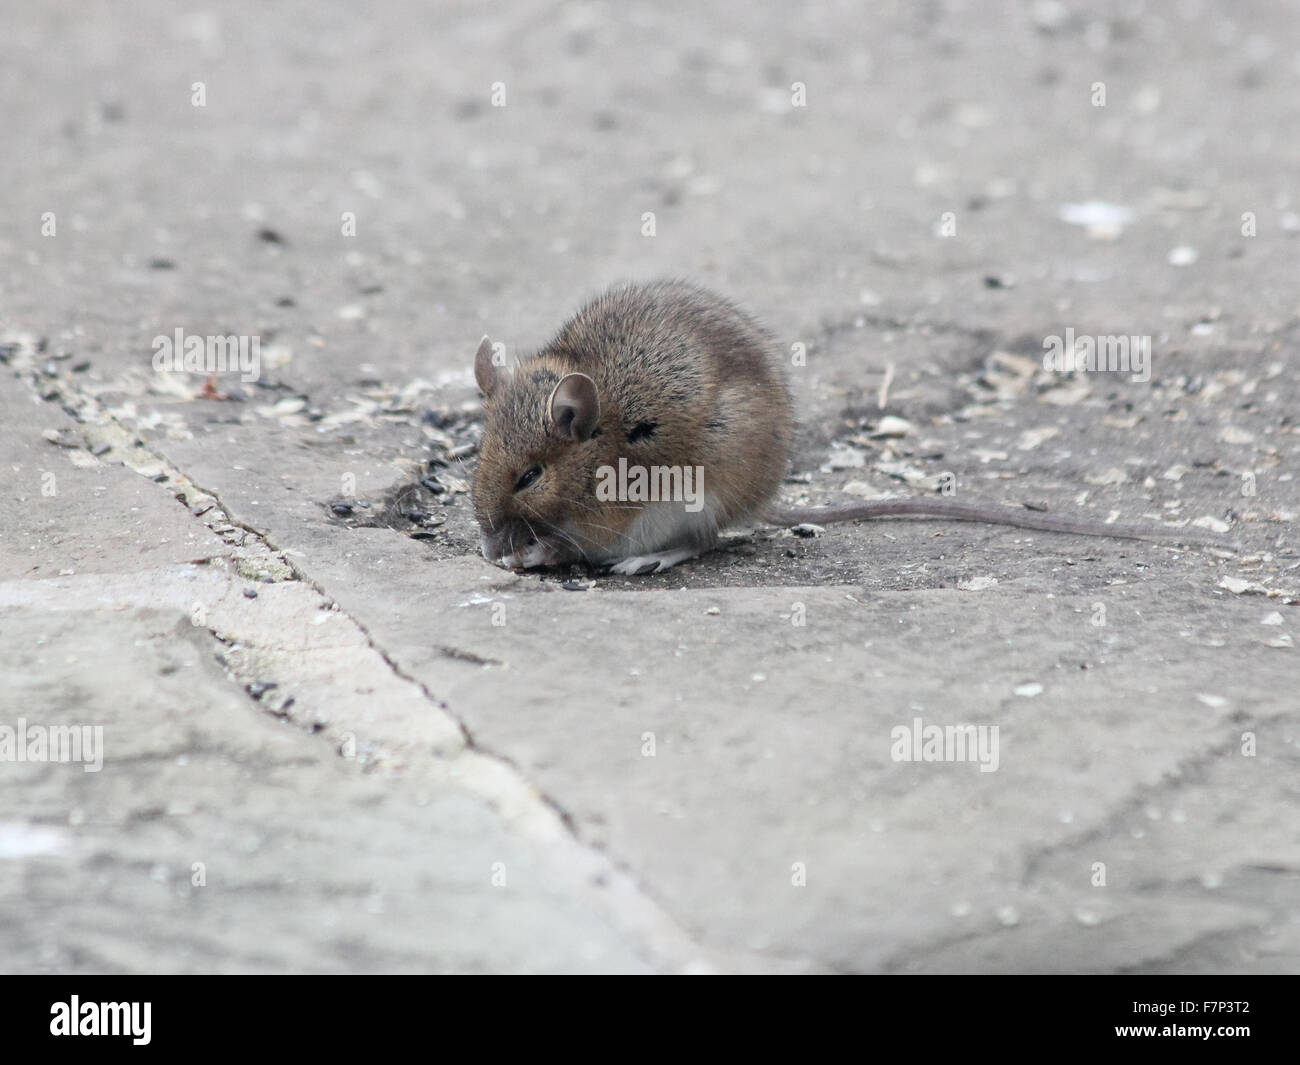 Sickly yellow necked field mouse (Apodemus flavicollis) eating seeds on a limestone patio - Stock Image